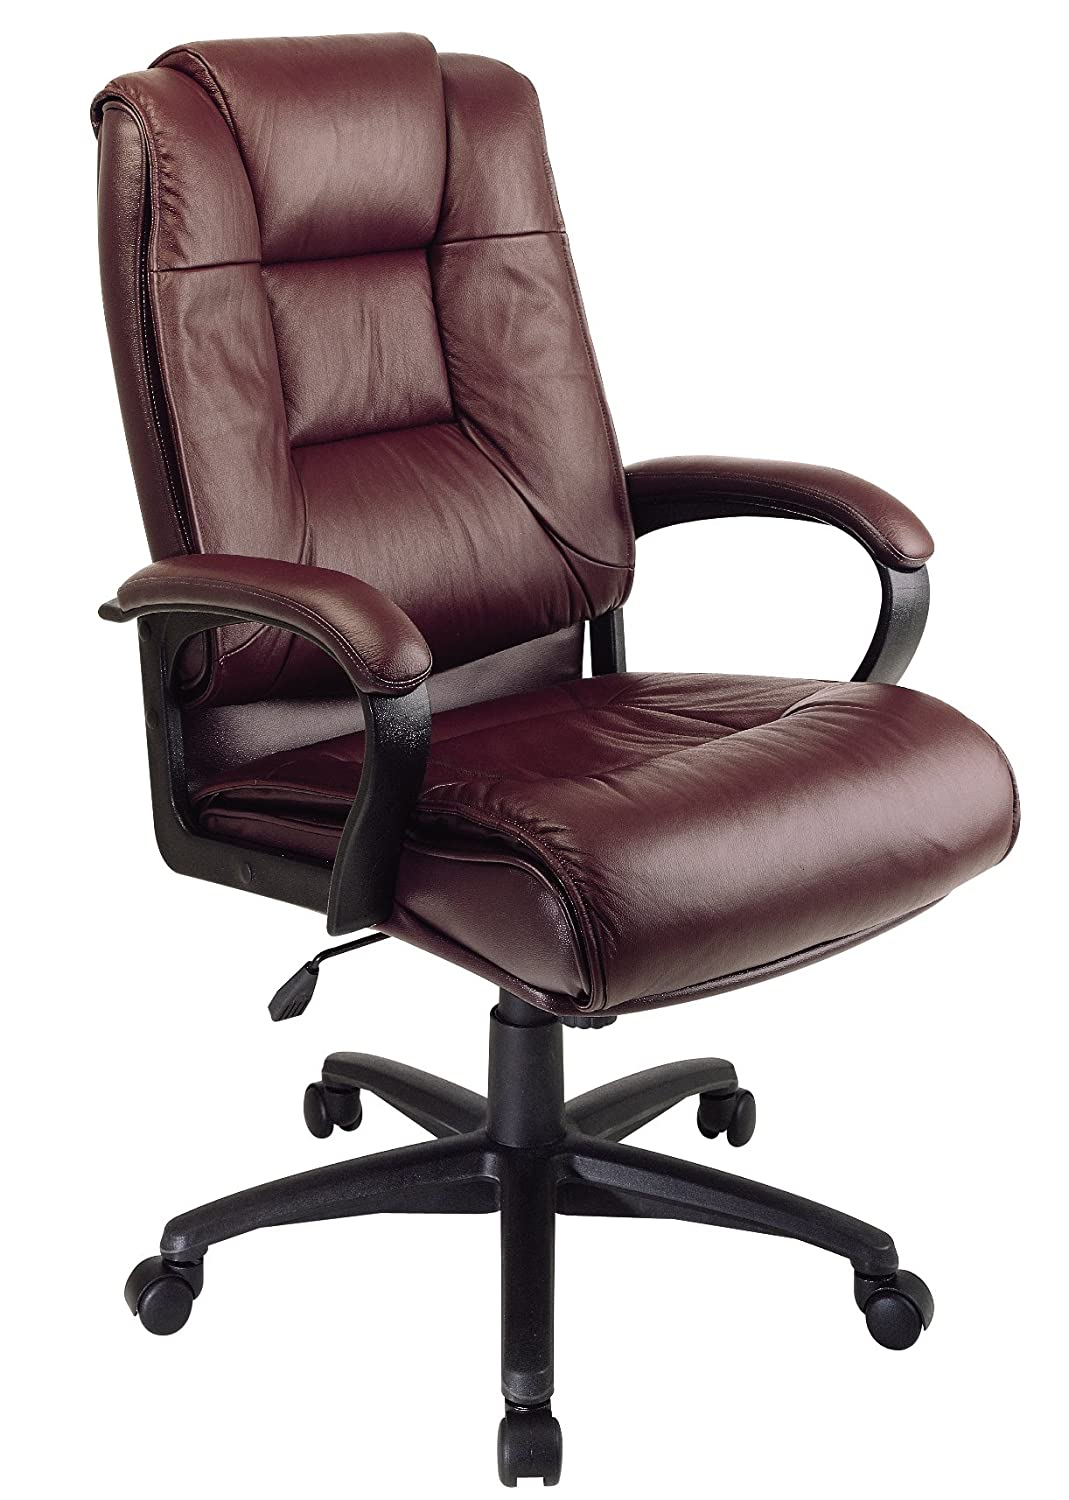 Executive Chair Office Star Executive Chairs Reviewed Office Chairs For